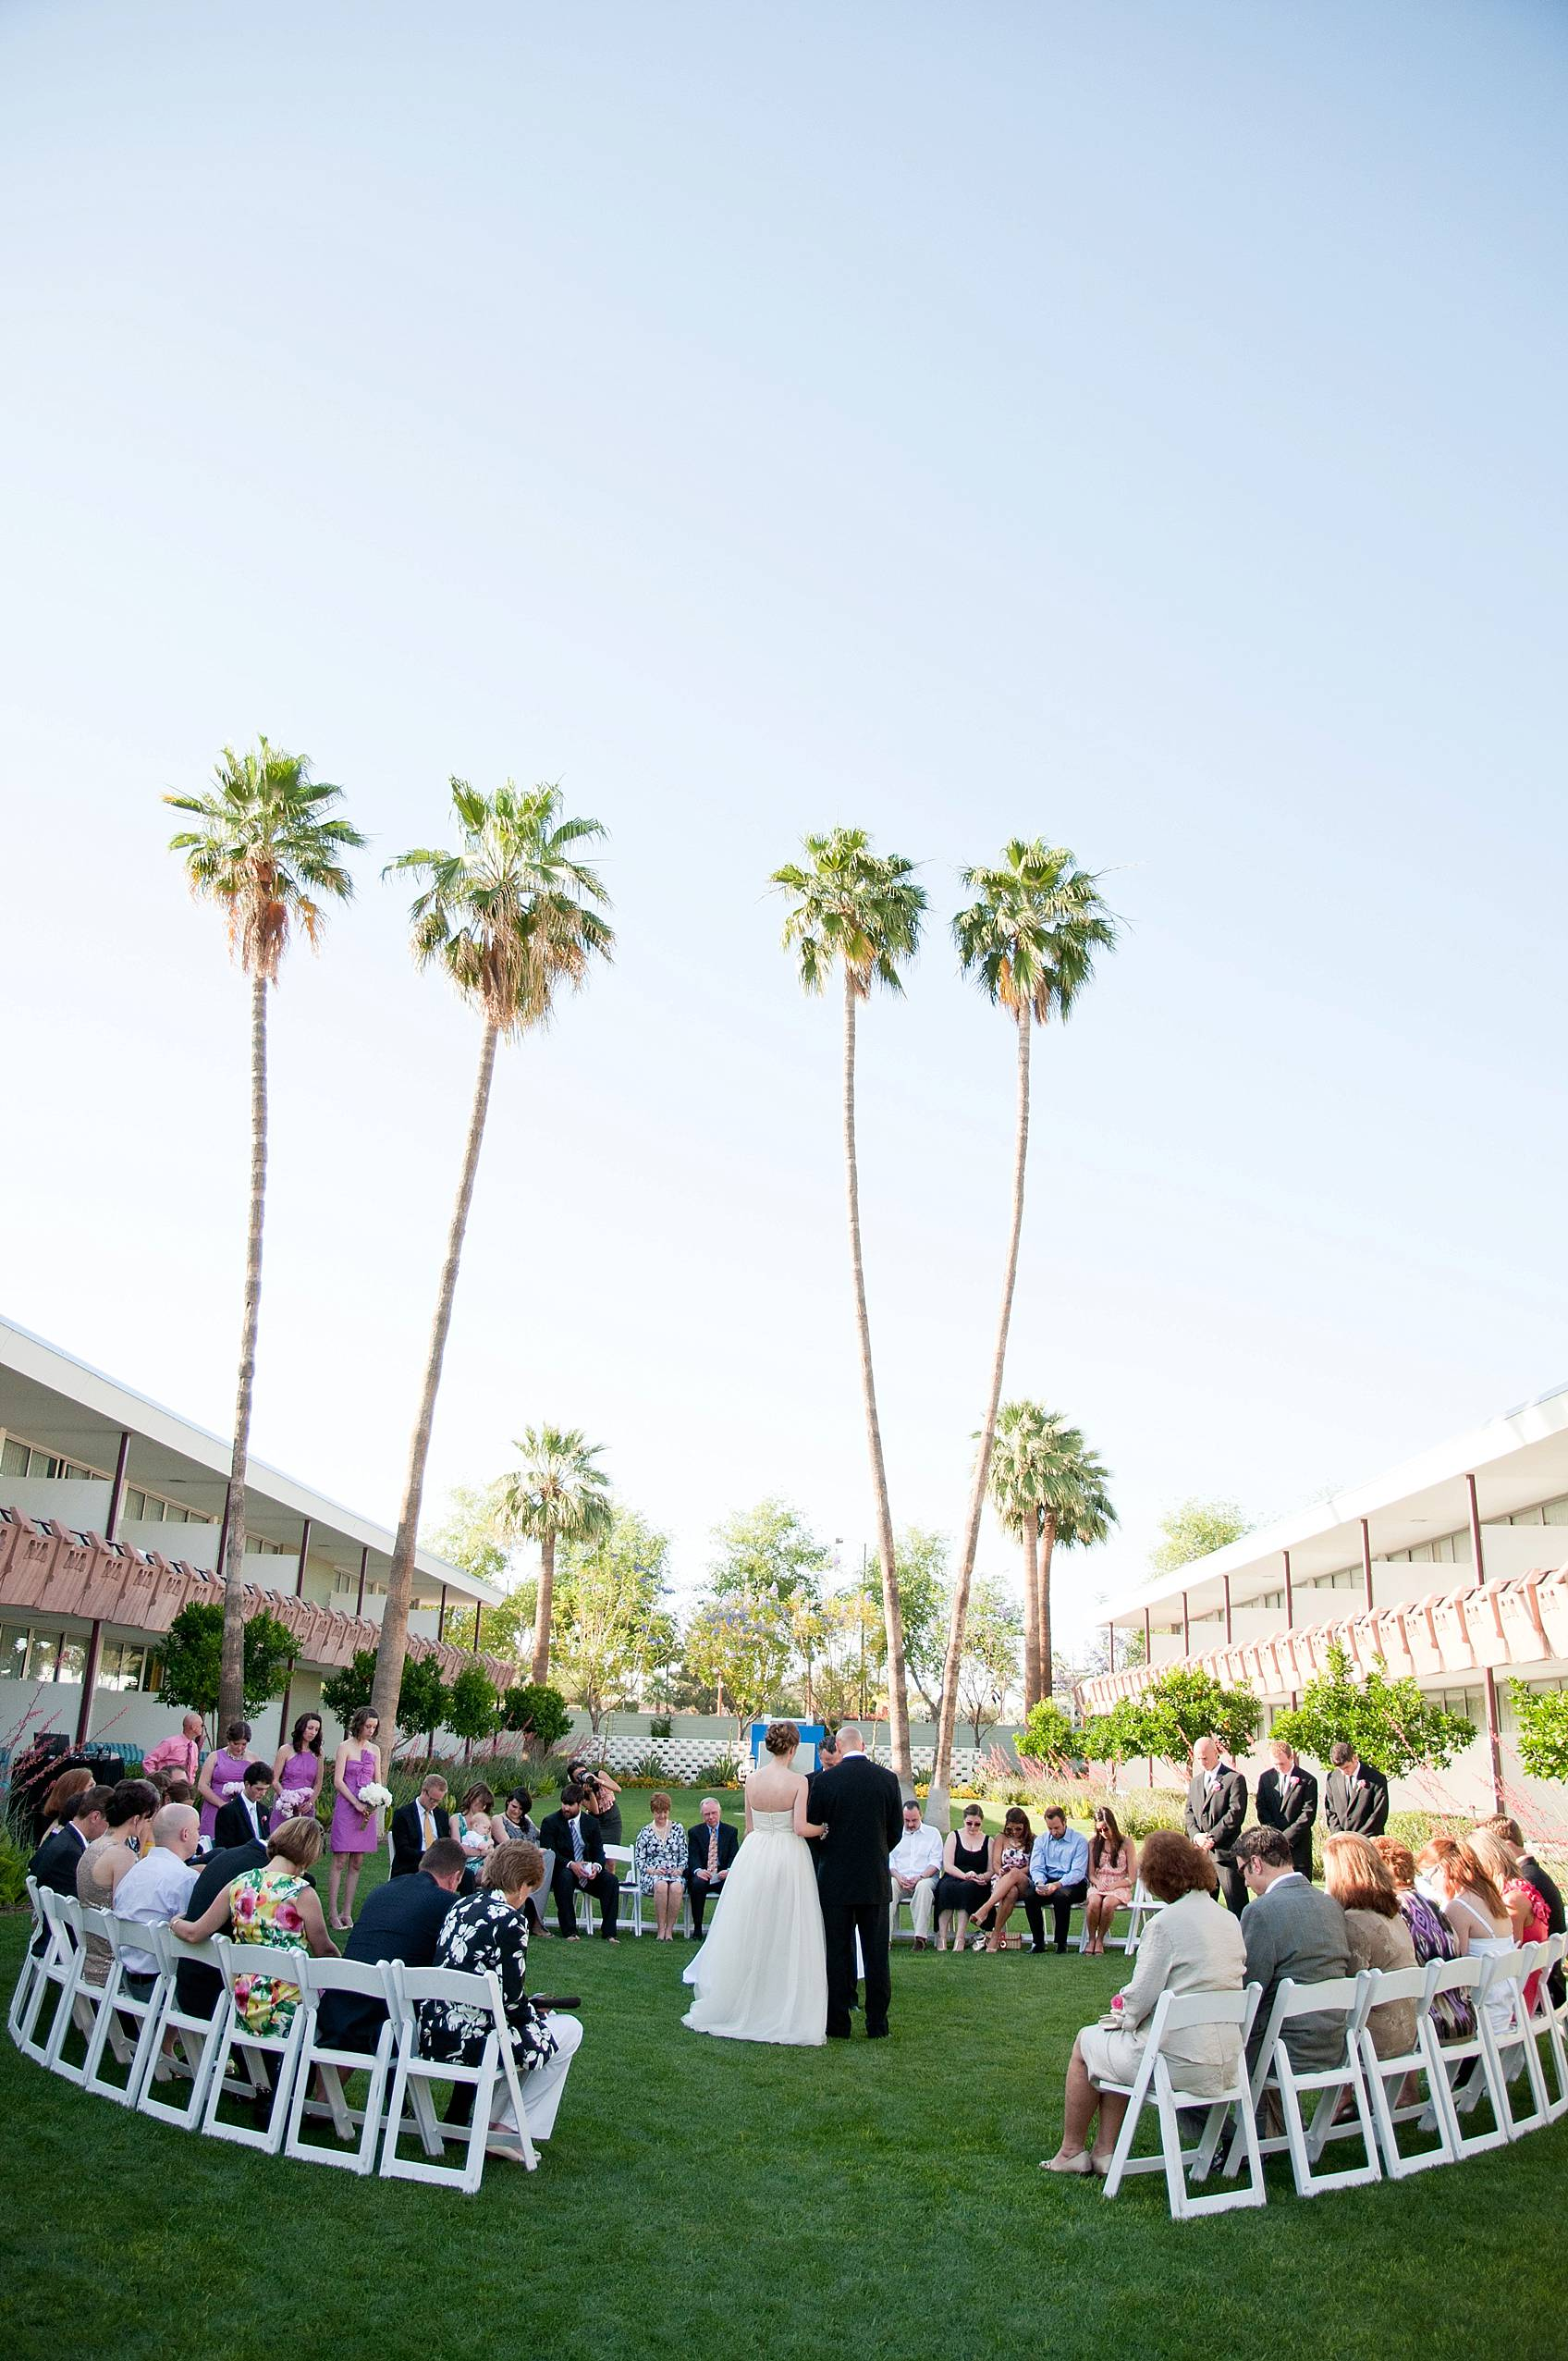 wedding ceremony on lawn at hotel valley ho in shape of circle